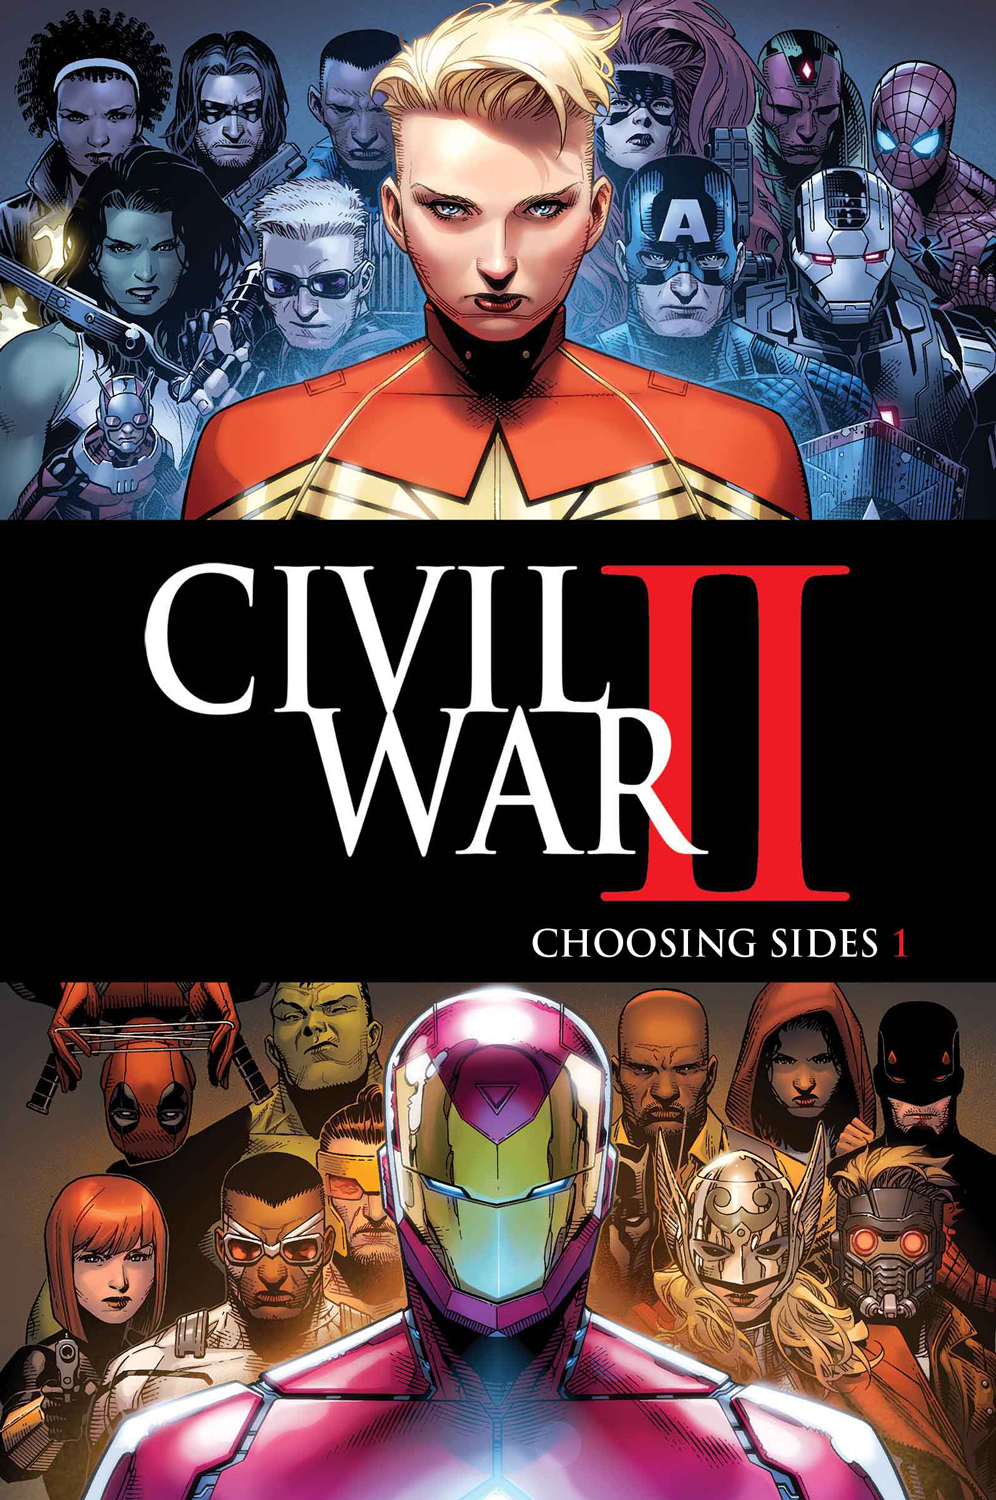 Your First Look at CIVIL WAR II: CHOOSING SIDES #1!